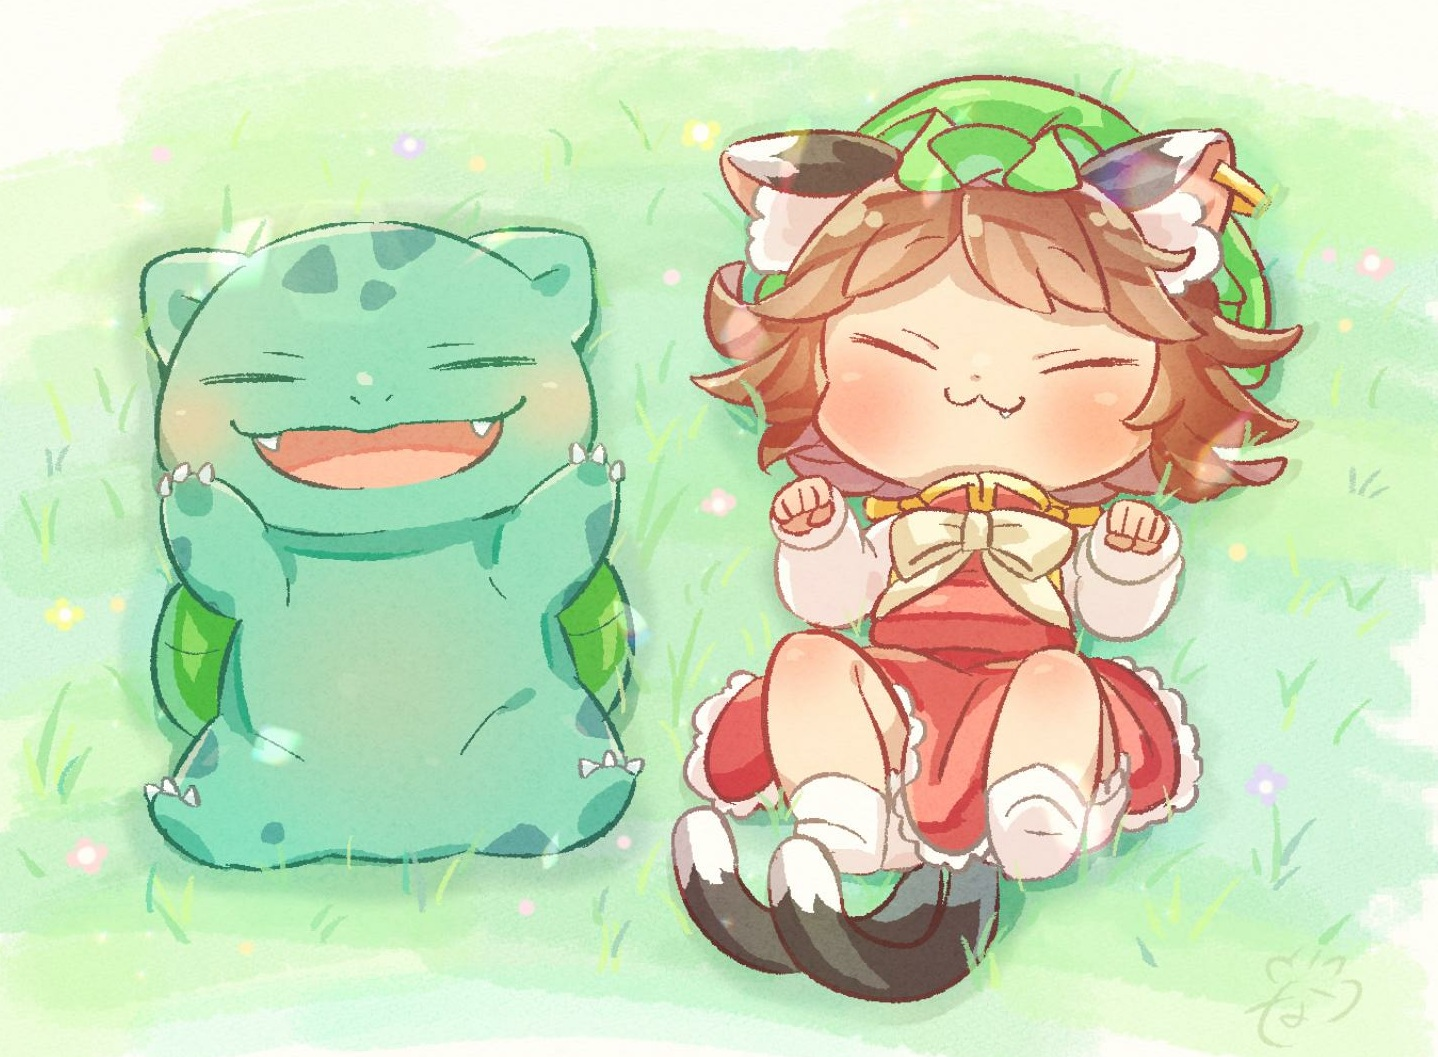 animal_ears bow brown_hair bulbasaur catgirl cat_smile chen chibi crossover dress fang grass hat ibaraki_natou multiple_tails pokemon short_hair tail touhou